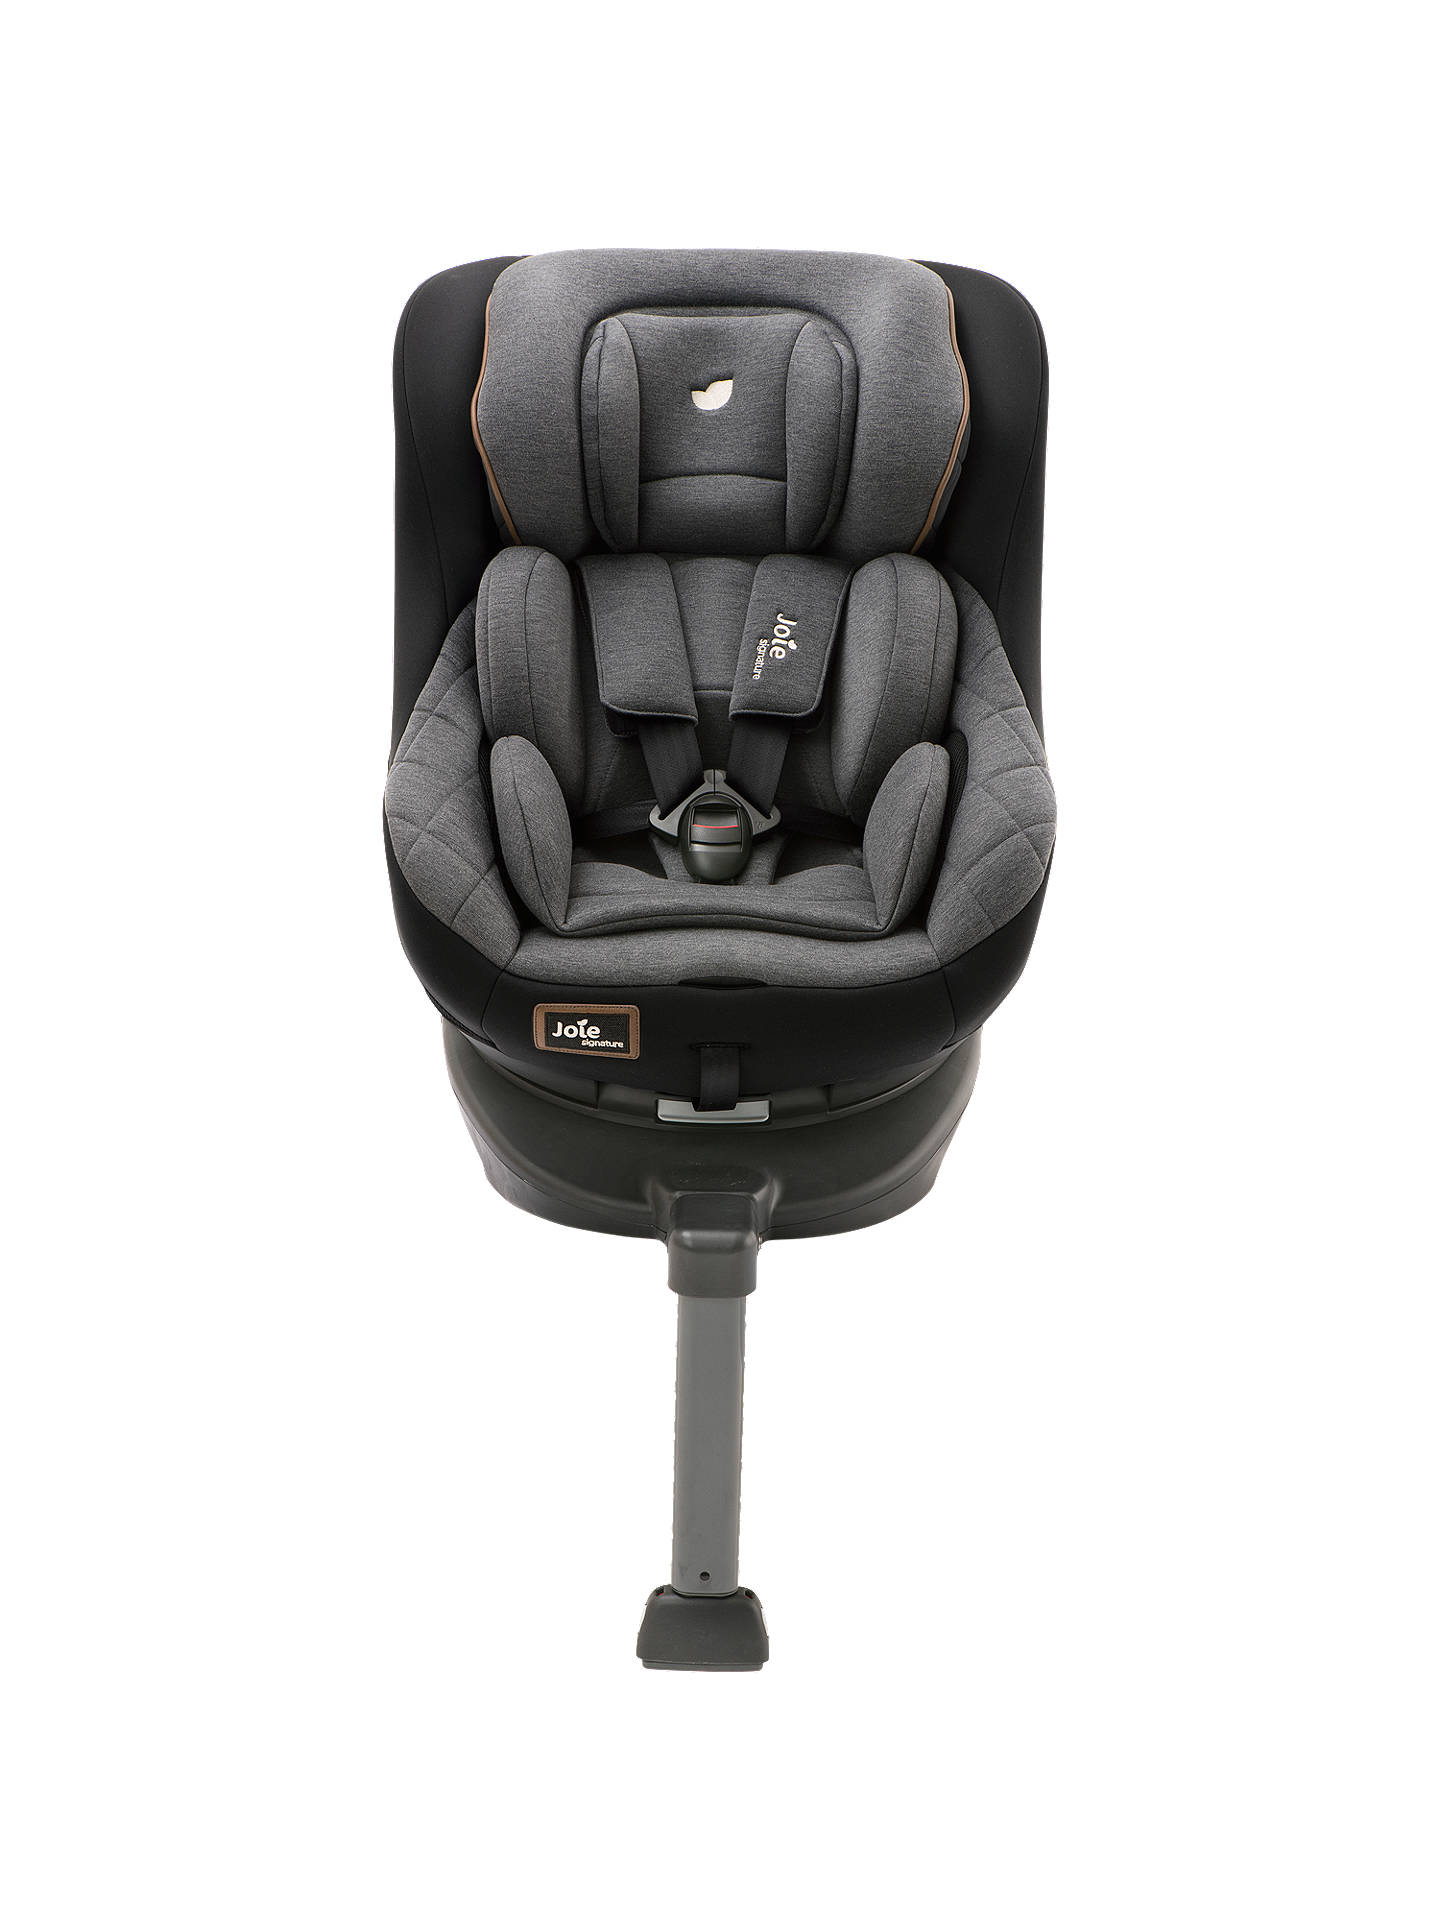 joie baby spin 360 signature group 0 1 car seat noir at john lewis partners. Black Bedroom Furniture Sets. Home Design Ideas